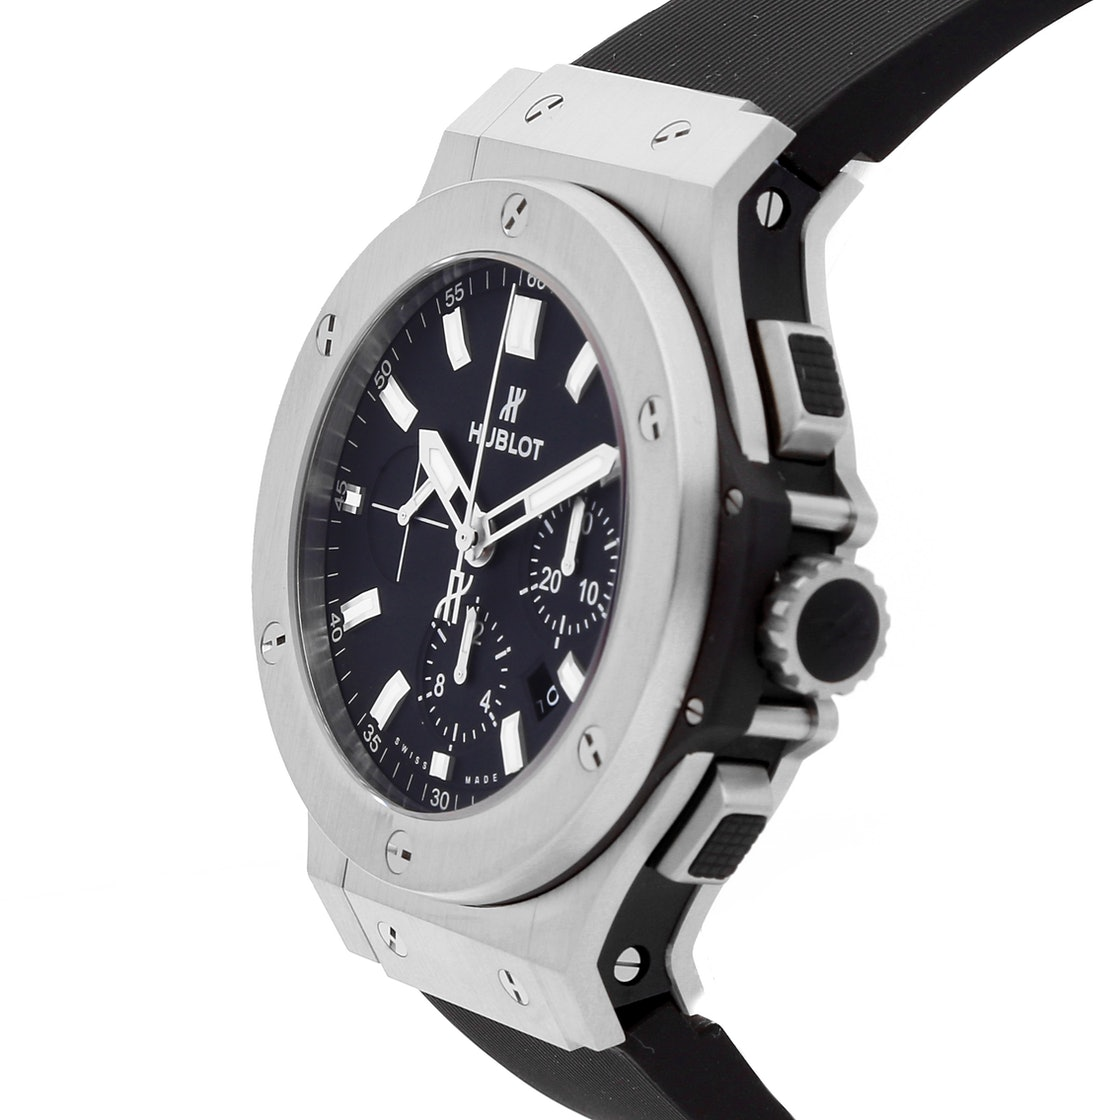 Hublot Big Bang Chronograph 301.SX.1170.RX